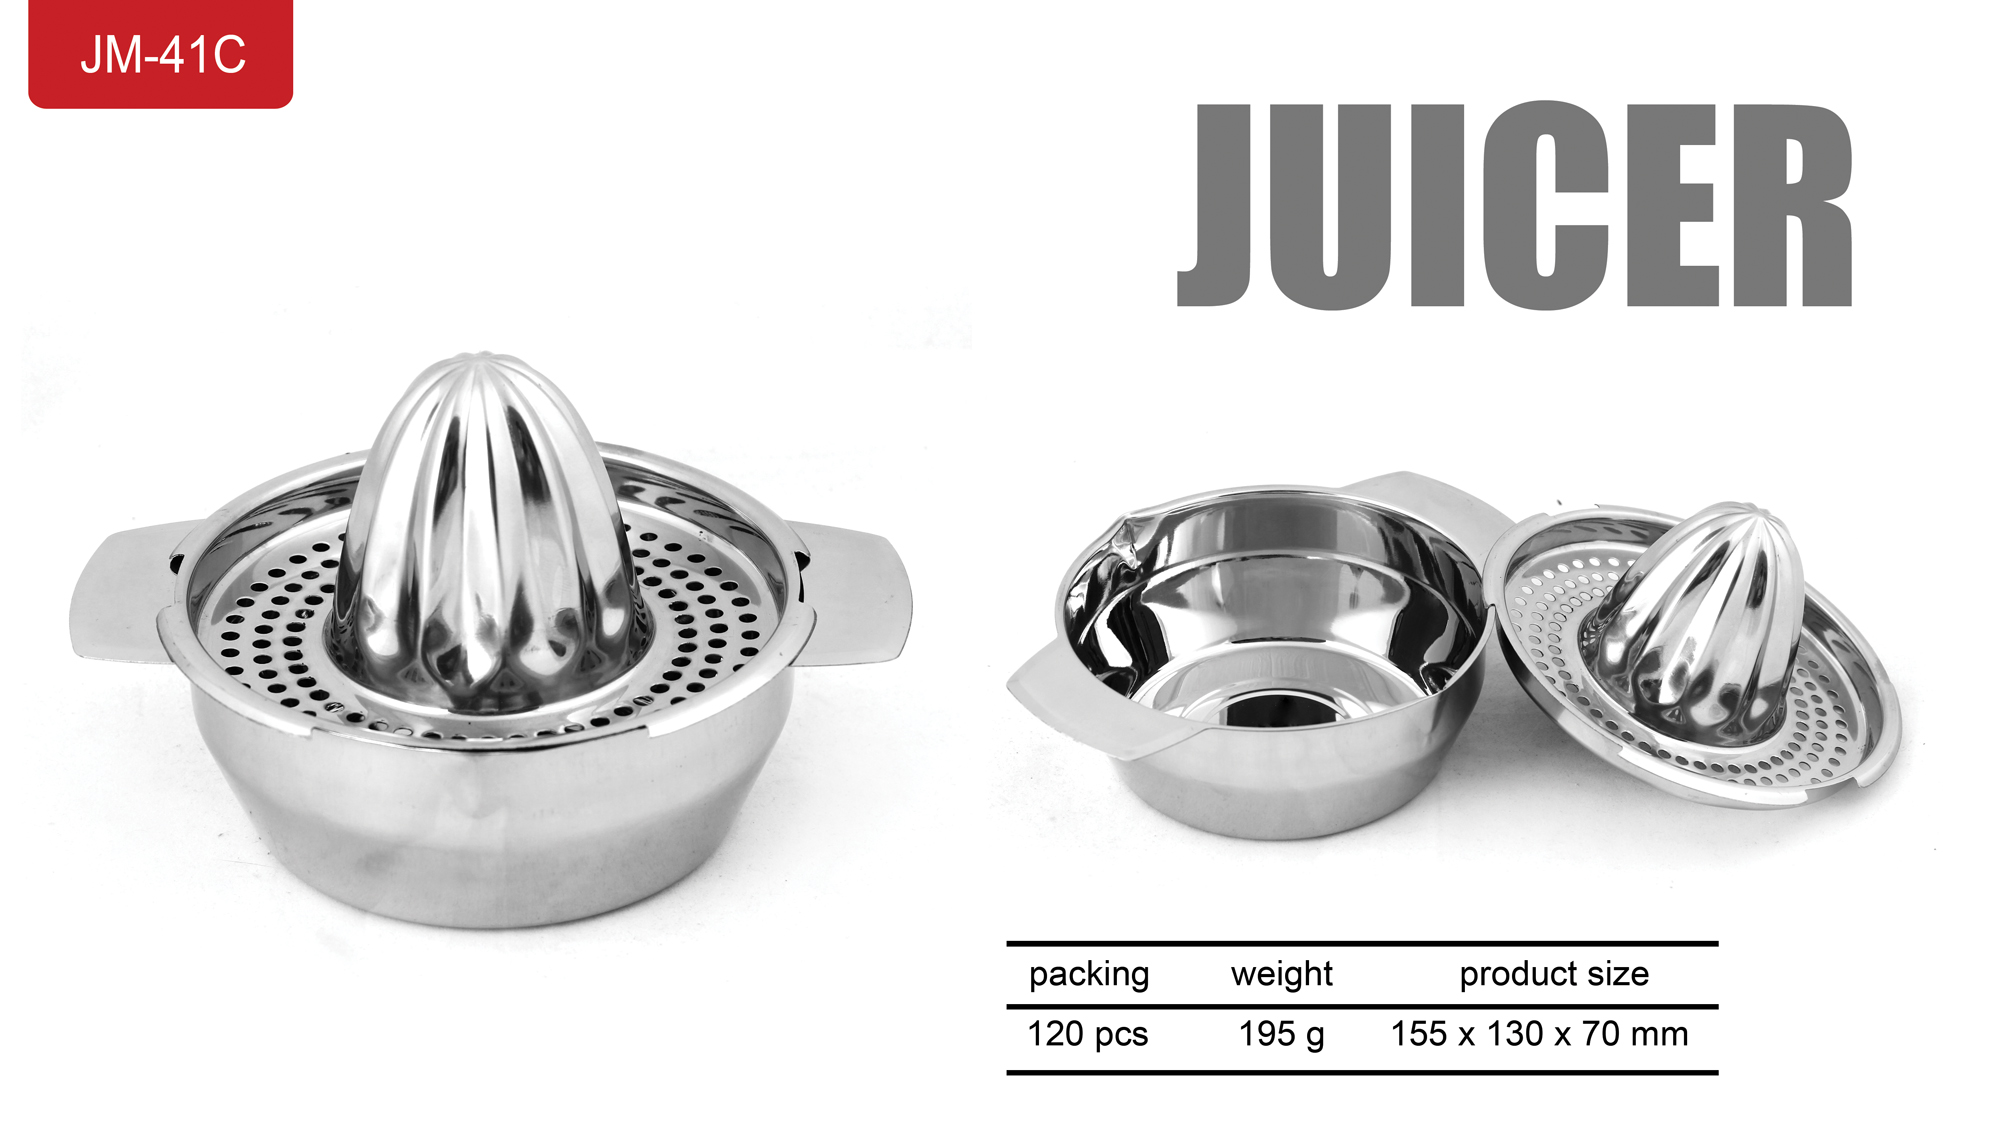 Perasan Manual Jeruk Lemon Orange Juicer Stainless Steel - 648